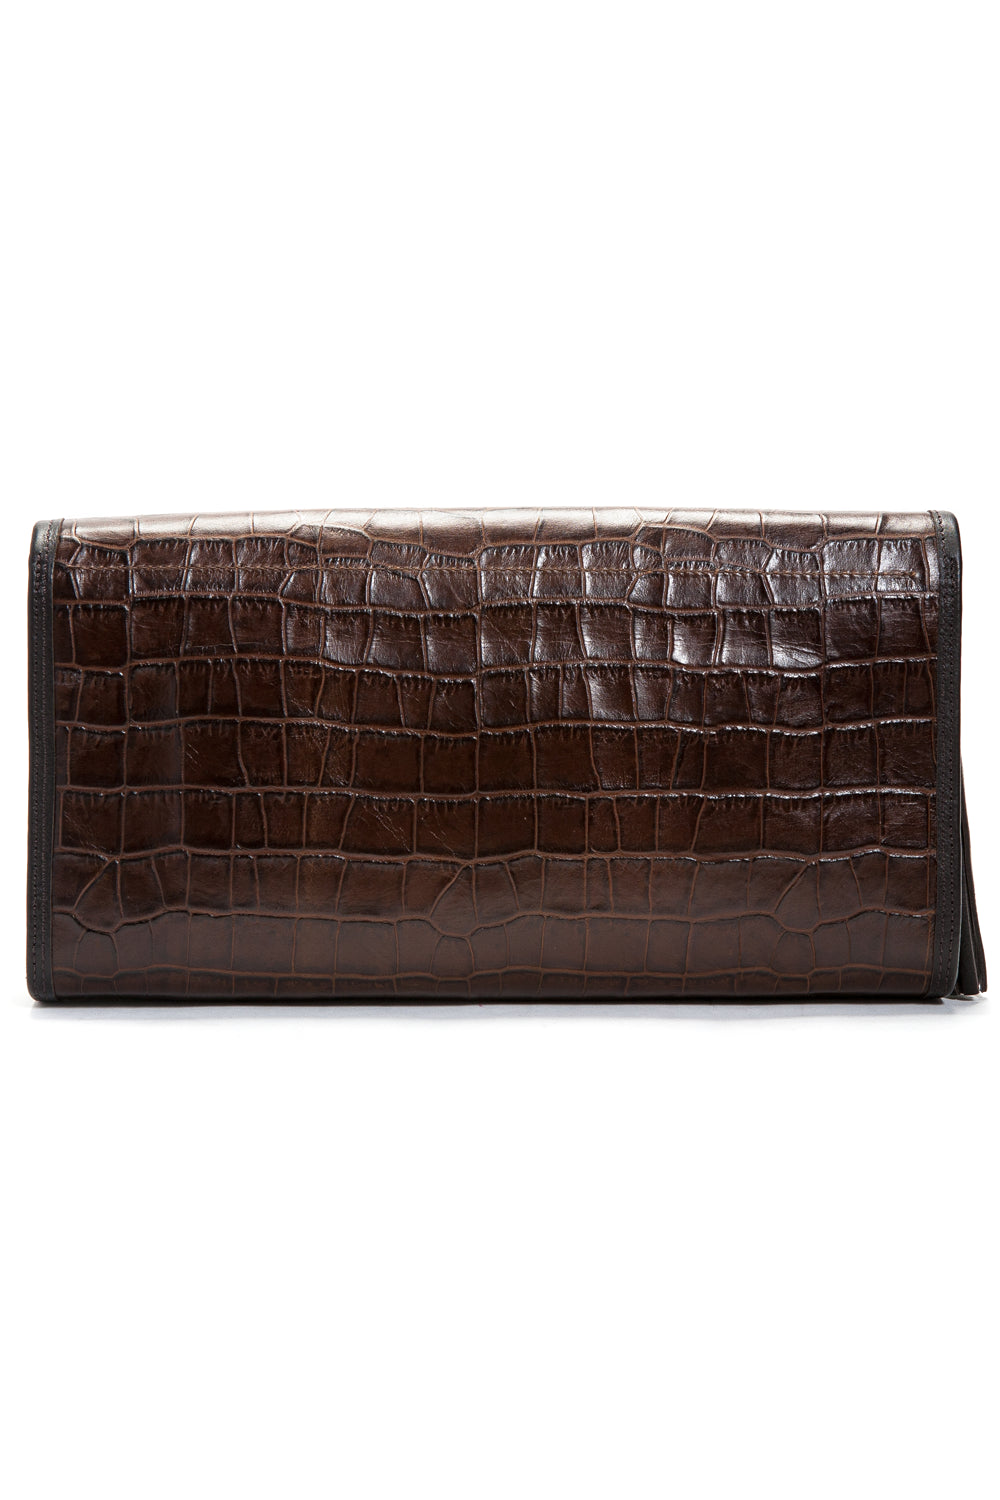 Cocoa Brown, Croc-Effect Leather 'Cara' Envelope Clutch | Mel Boteri | Back View